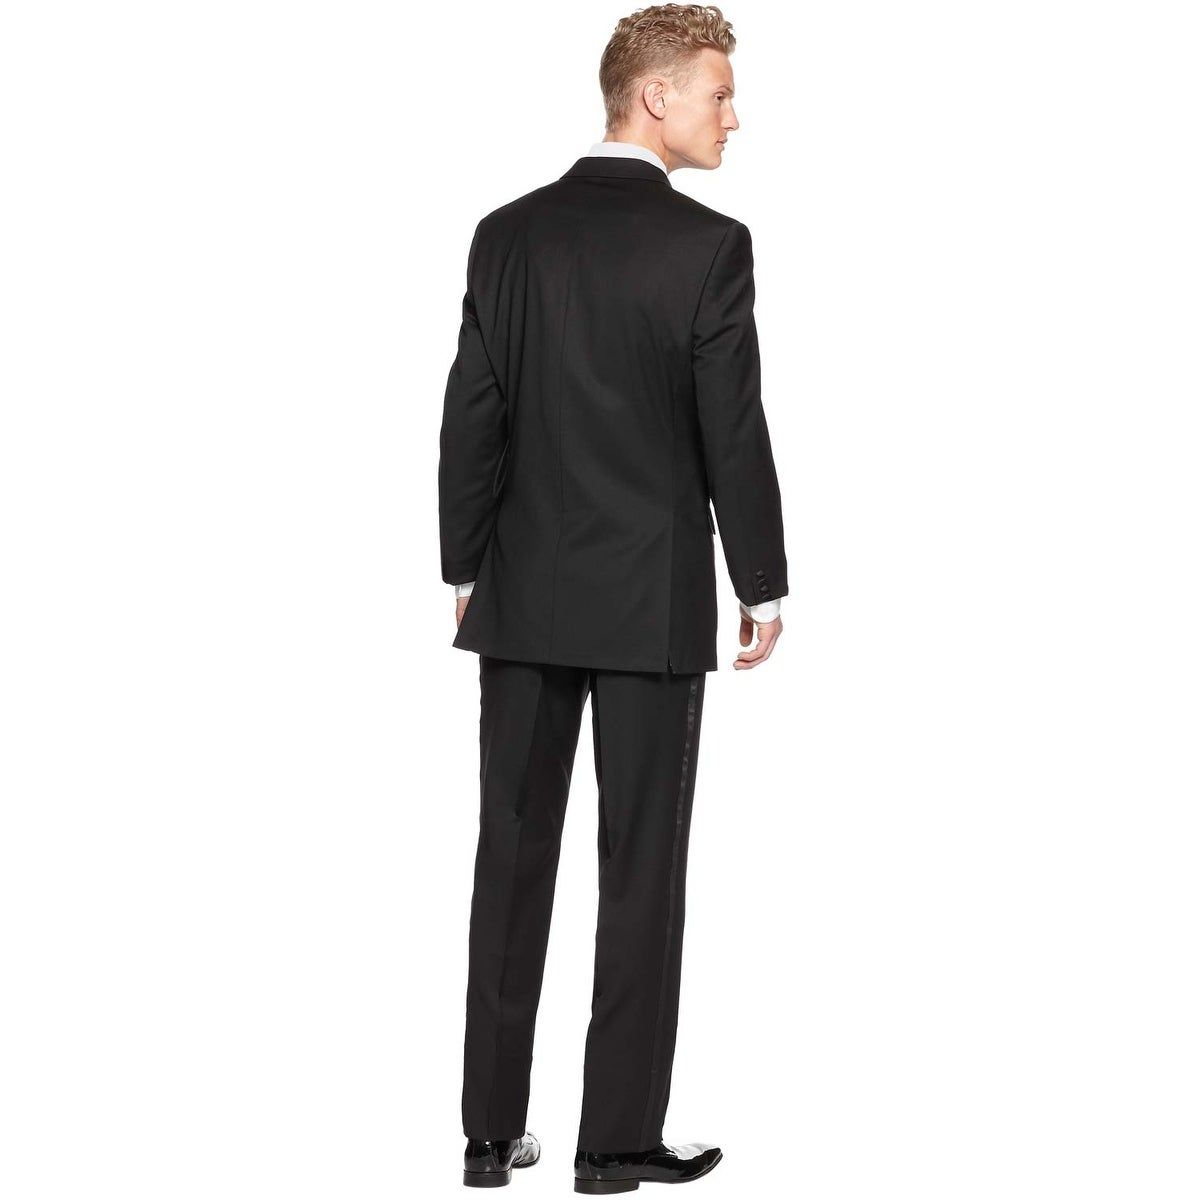 1f881a541e09 Shop Calvin Klein Slim Fit Tuxedo 42 Regular 42R Black Wool Flat Front  Pants 36W Myer - Free Shipping Today - Overstock - 20753721